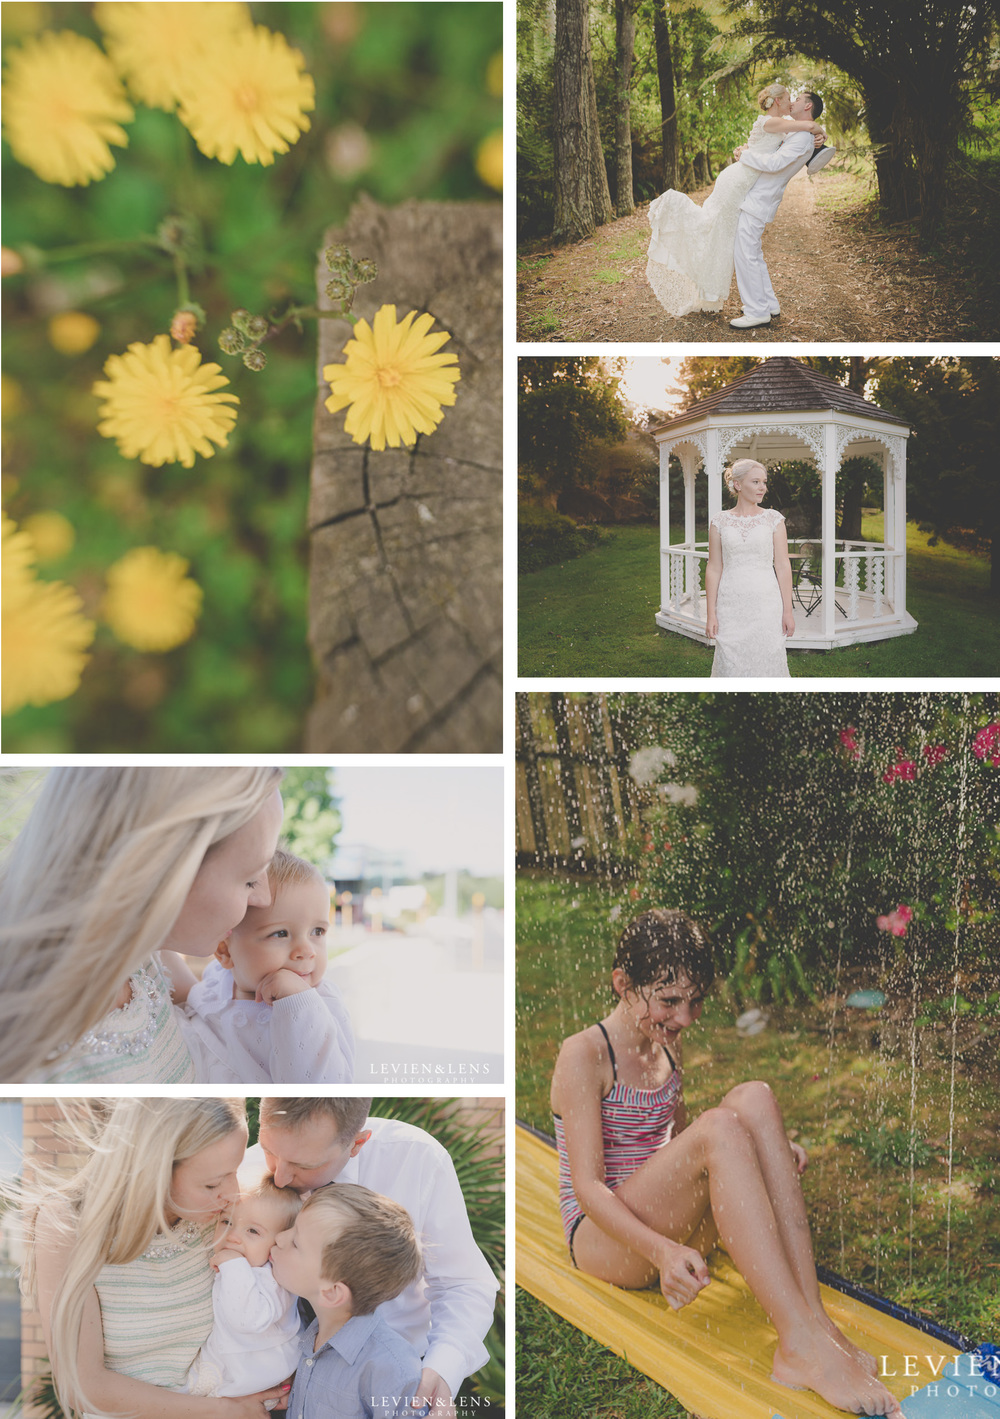 My 365 Project. December {Auckland-Hamilton lifestyle wedding-family-event photographer}